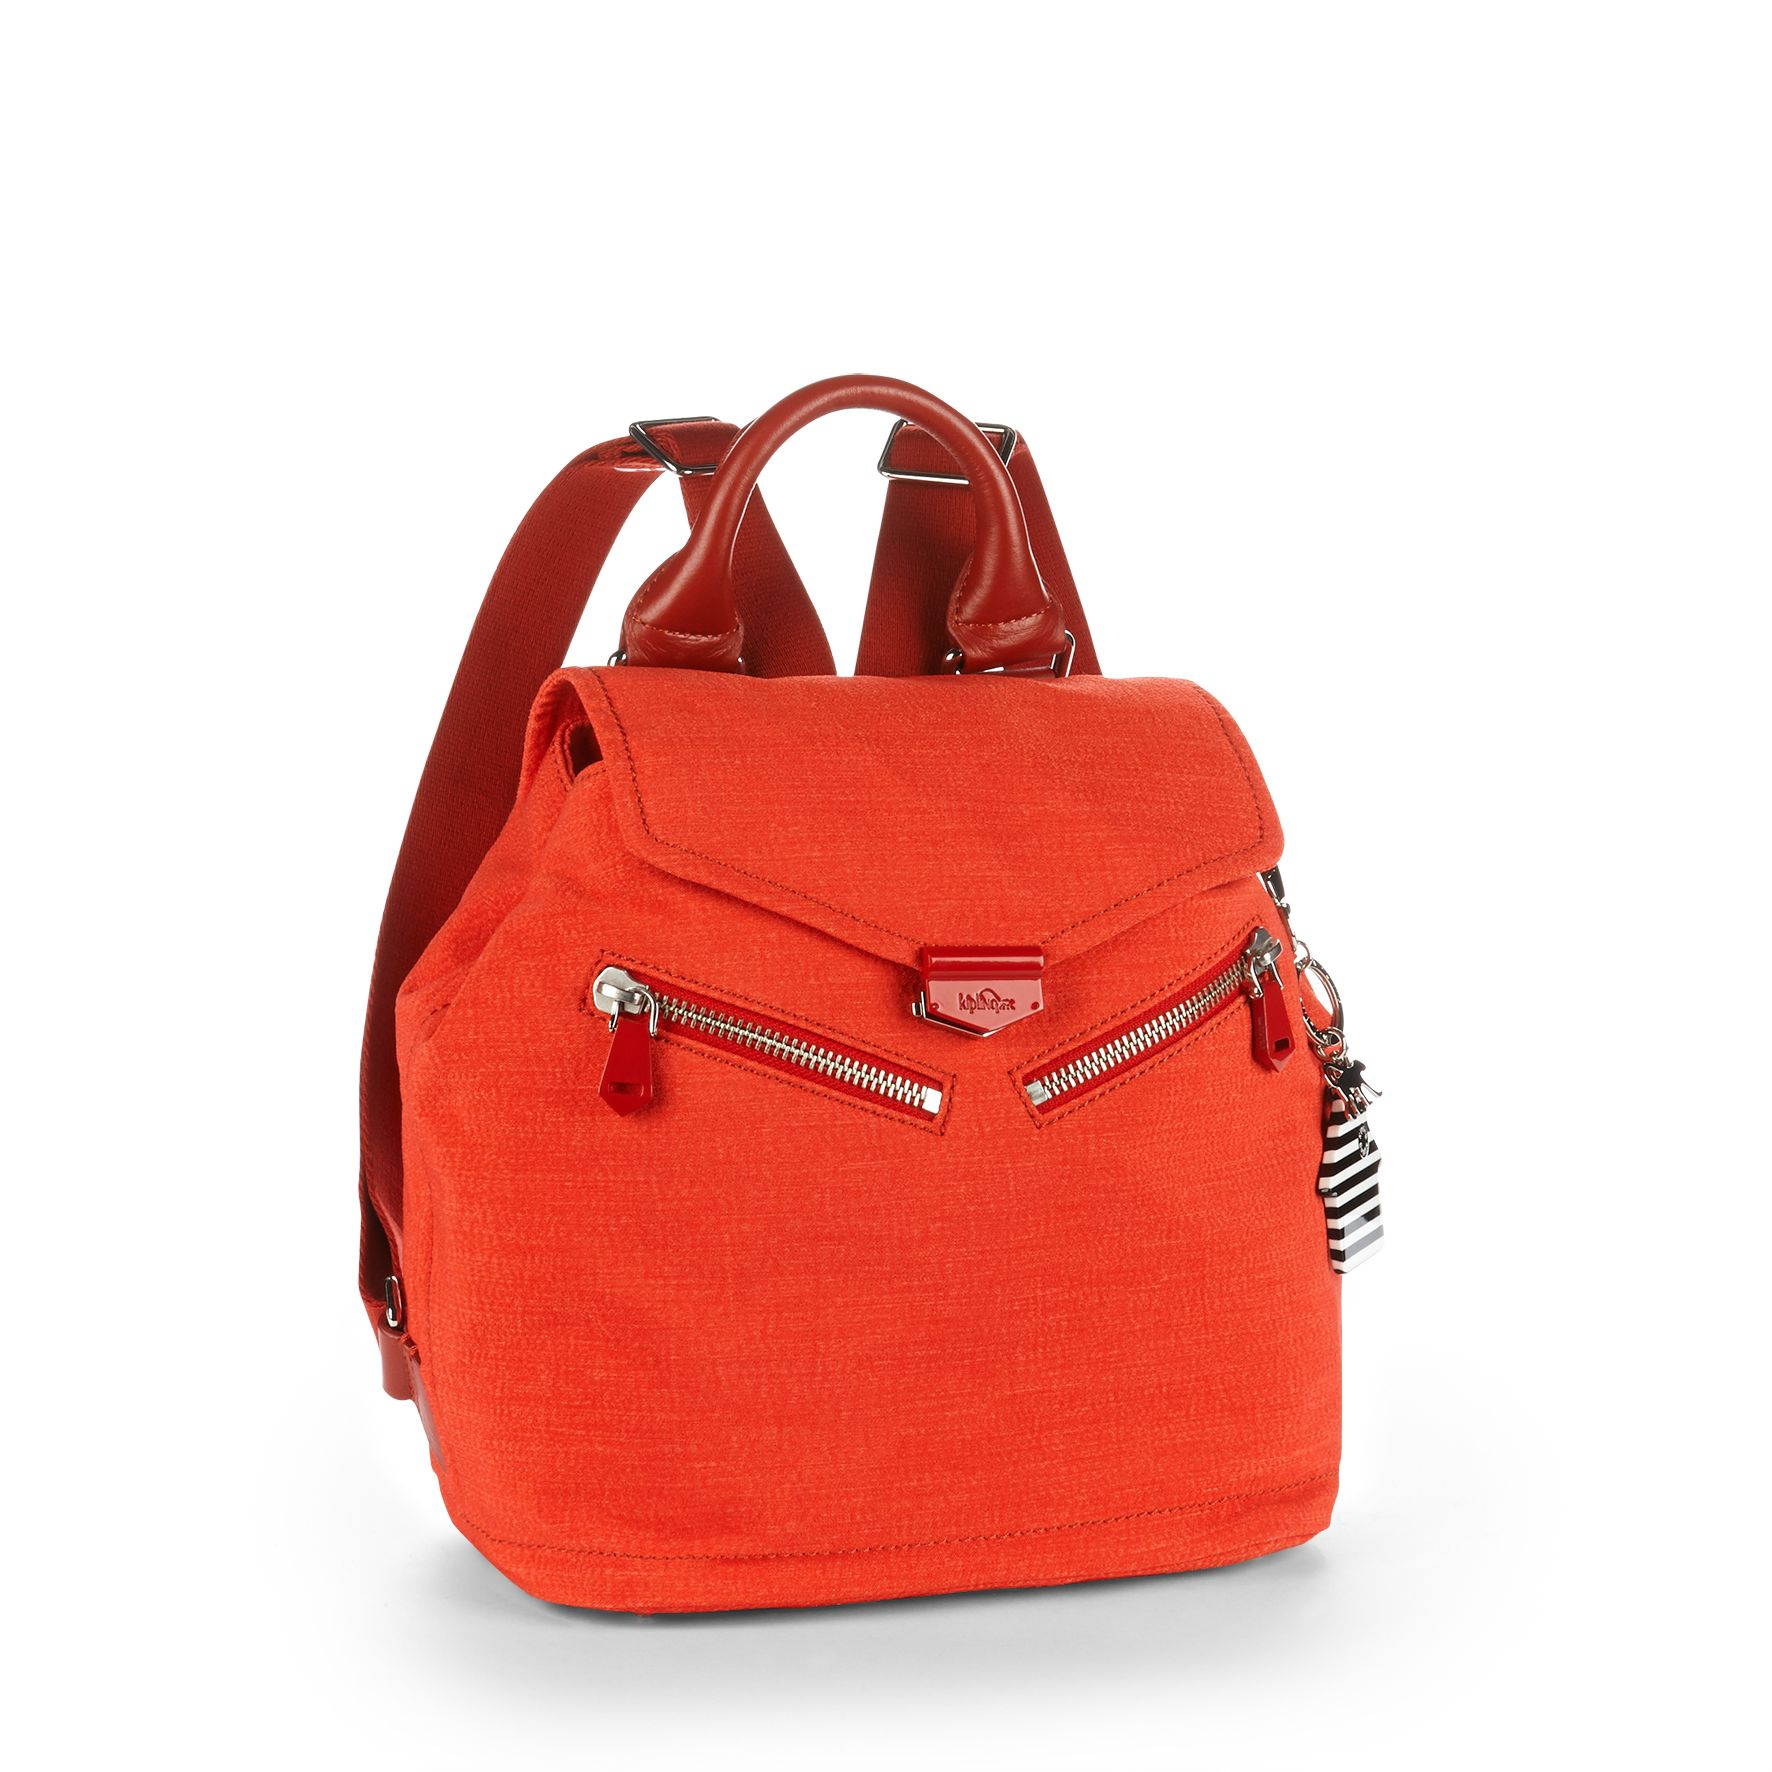 Kipling backpack | Shop for cheap Bags and Save online